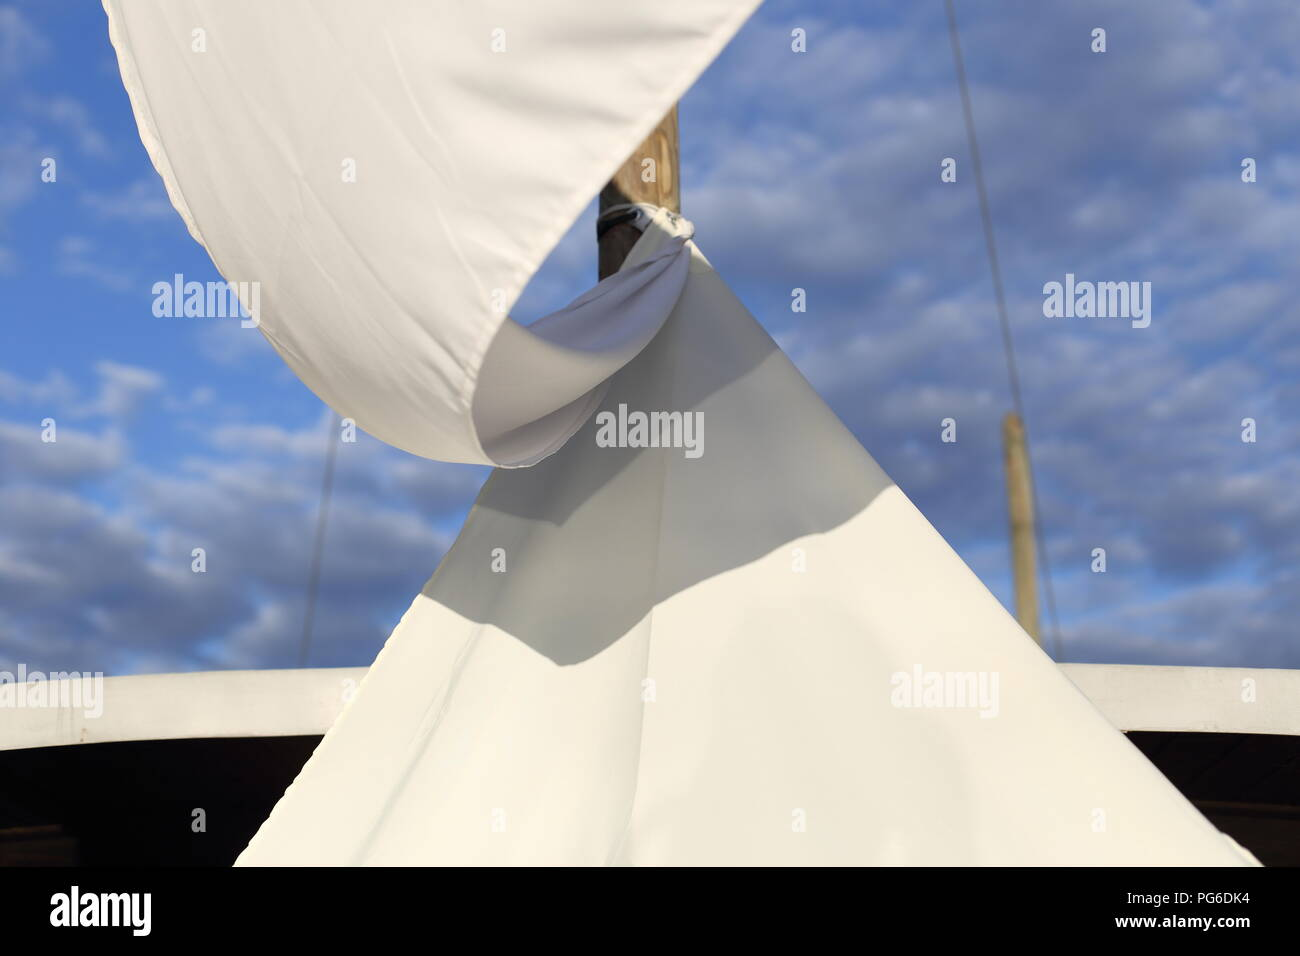 A White awning for sun protection - Stock Image